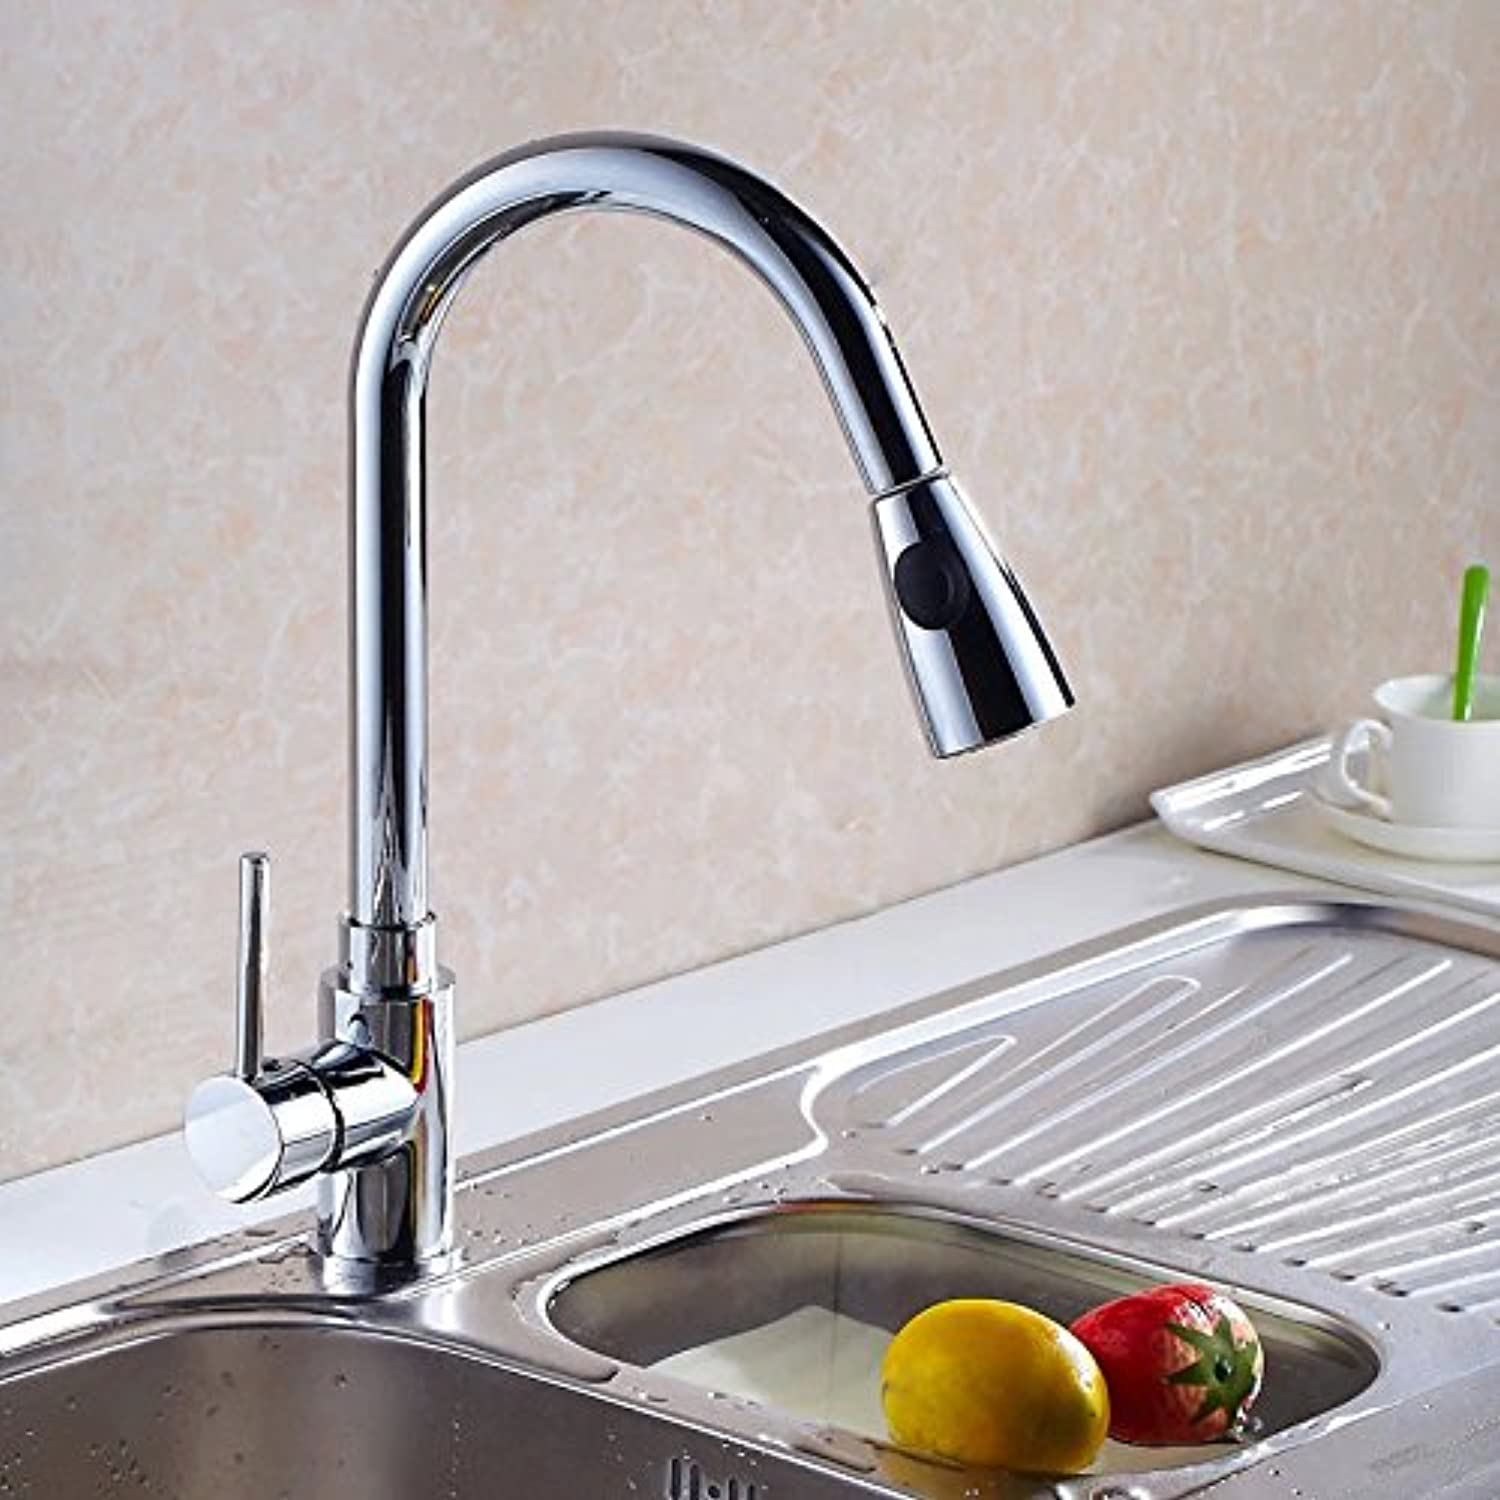 Commercial Single Lever Pull Down Kitchen Sink Faucet Brass Constructed Polished Sink Faucet Kitchen Faucet Kitchen Sink Faucet Multi-Function Pull Faucet Mixing Faucet